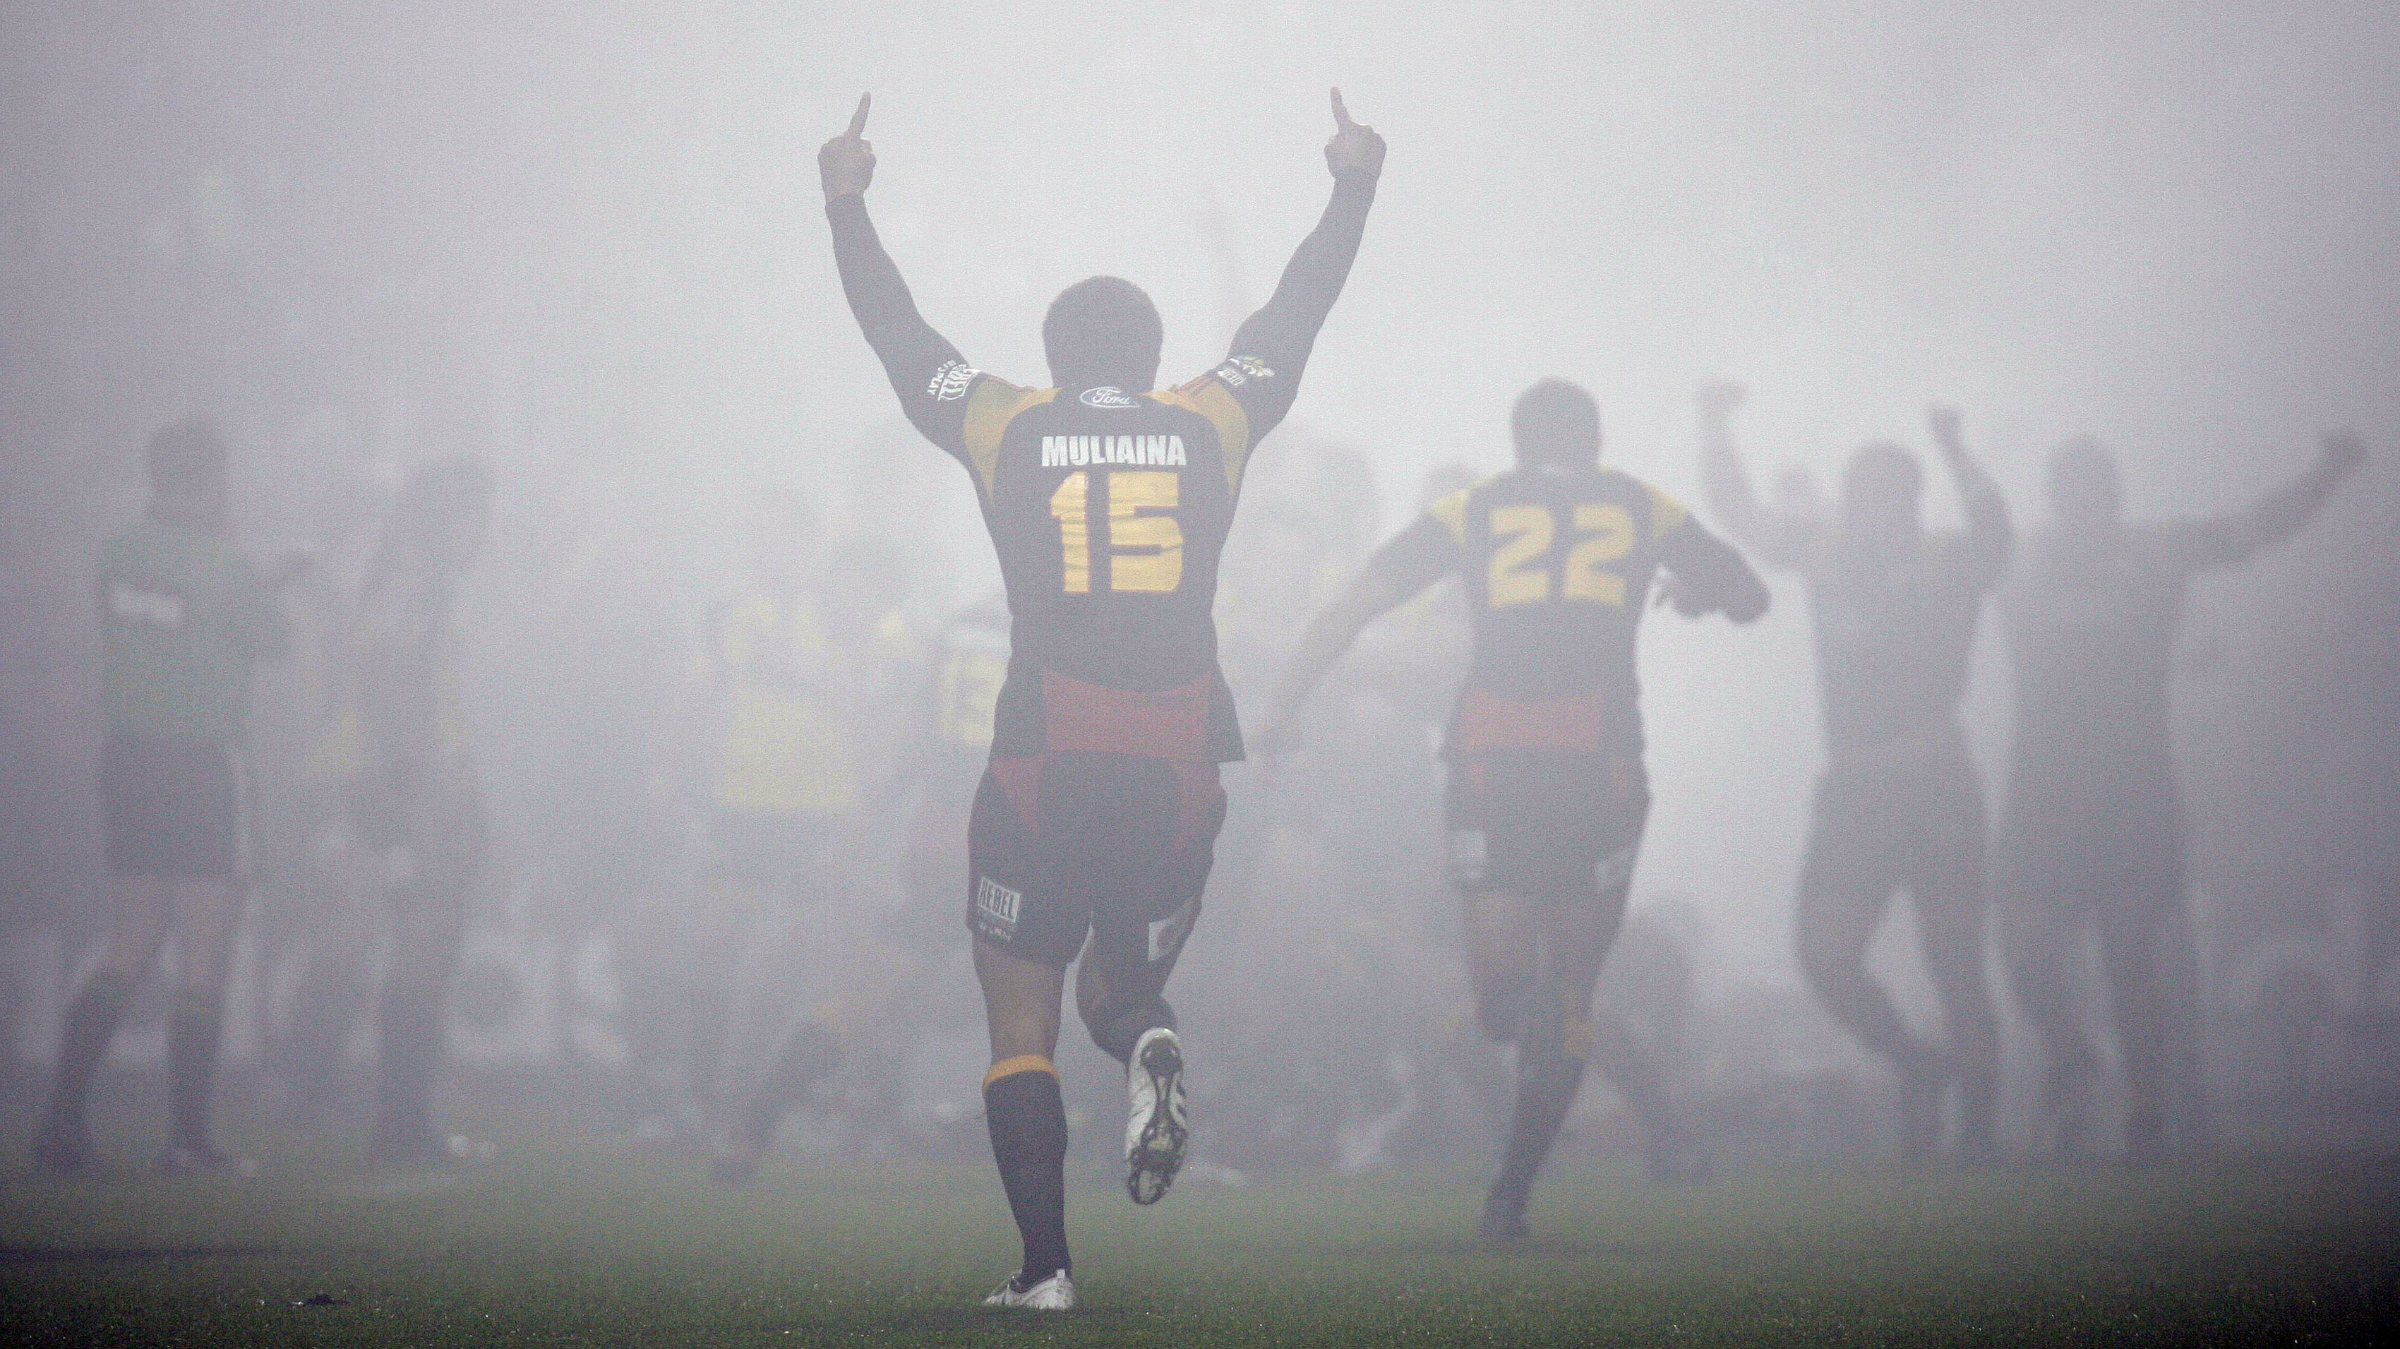 Mils Muliaina (C), captain of New Zealand's Waikato Chiefs, celebrates as he runs towards his team mates after beating New Zealand's Wellington Hurricanes during a foggy day at the Super 14 semi-final rugby match at Waikato Stadium in Hamilton, May 22, 2009. REUTERS/Nigel Marple